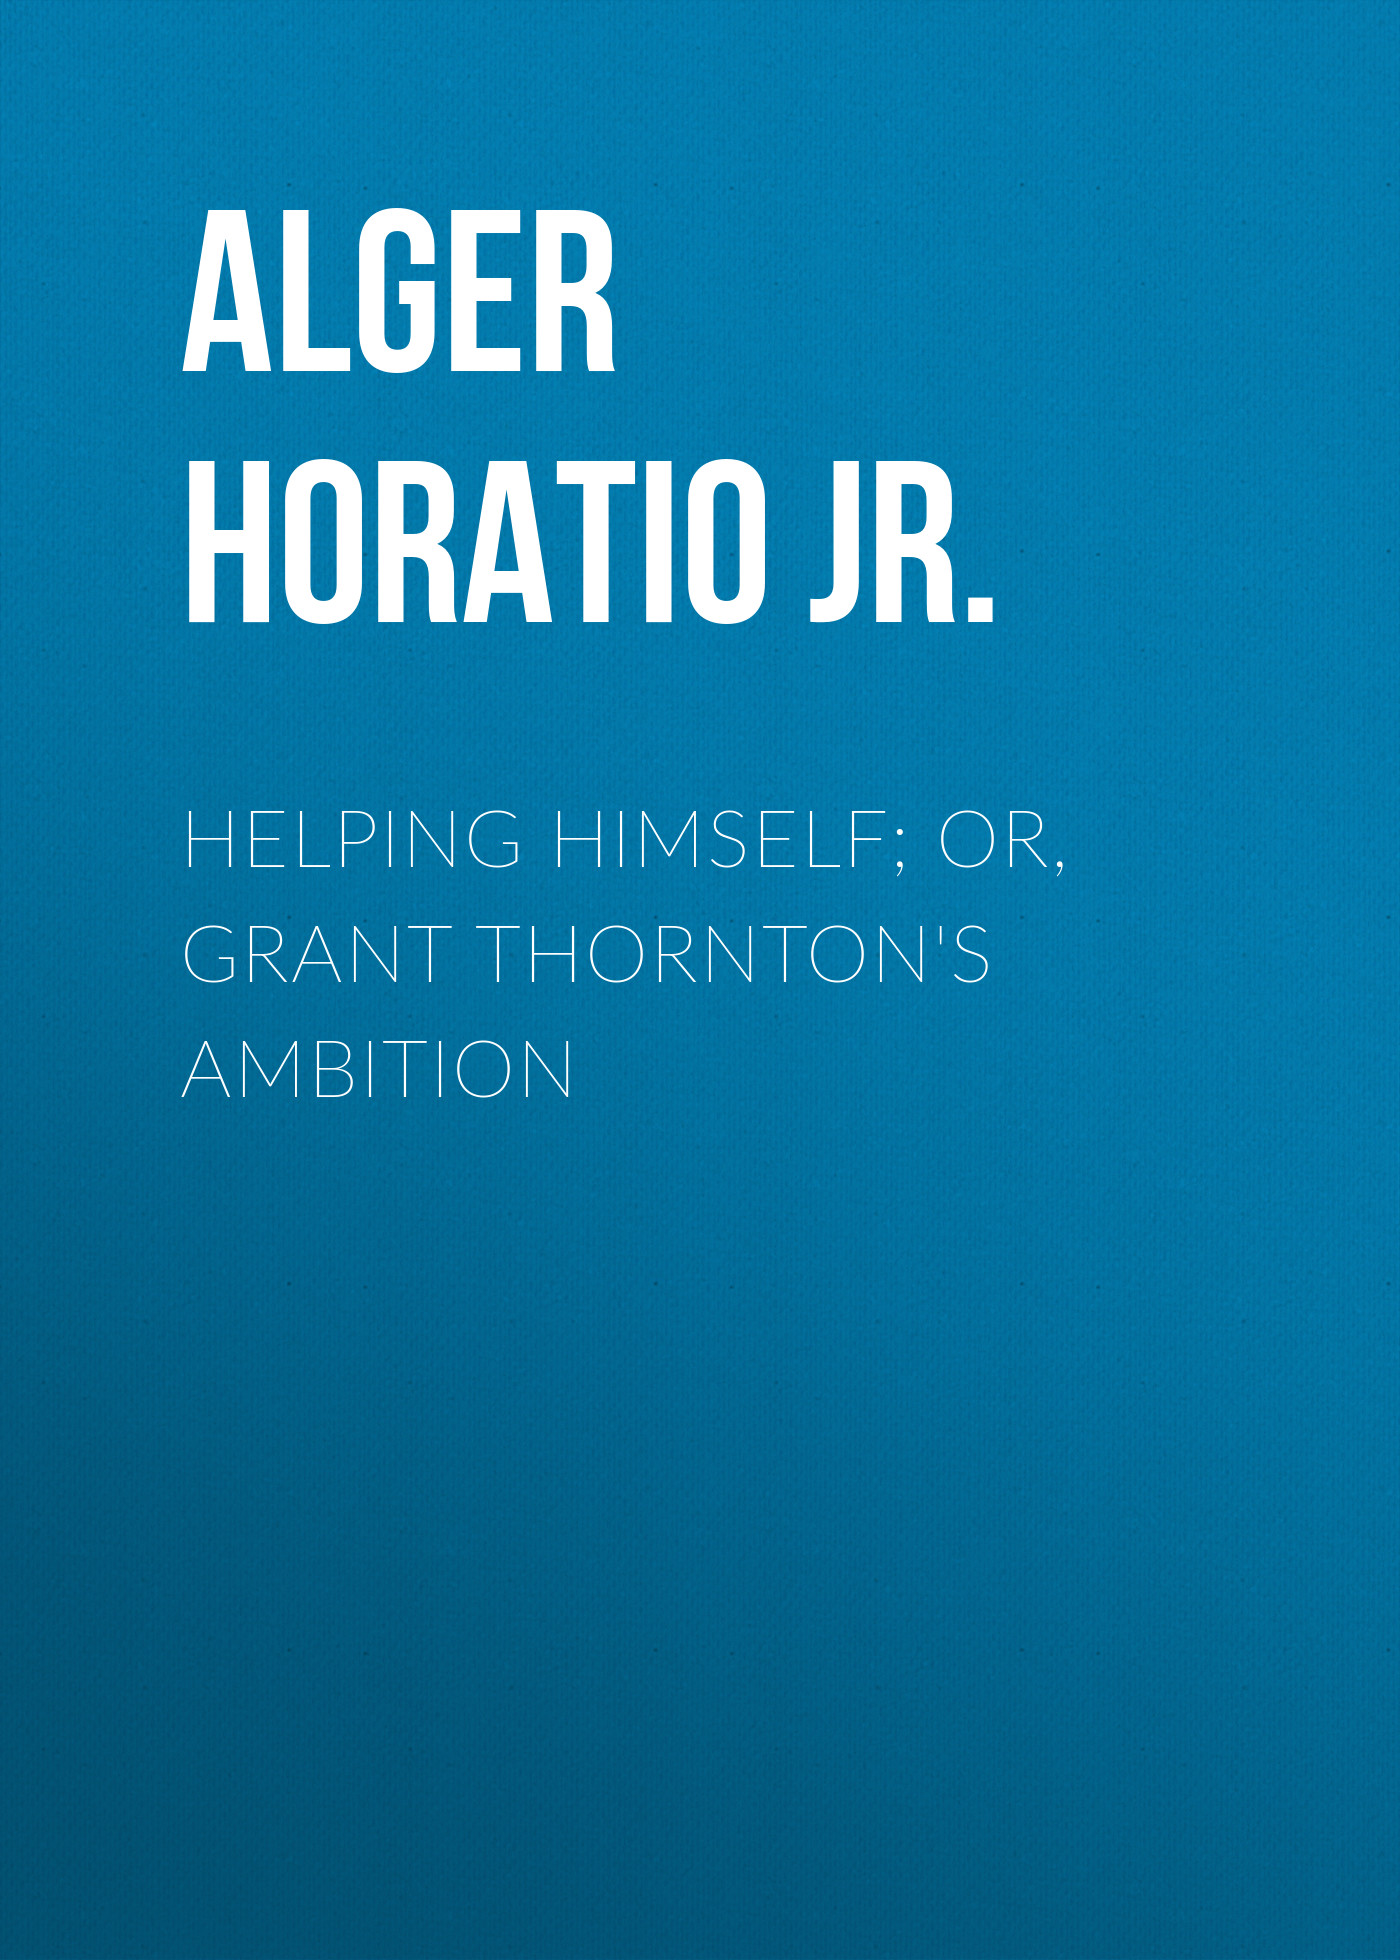 лучшая цена Alger Horatio Jr. Helping Himself; Or, Grant Thornton's Ambition